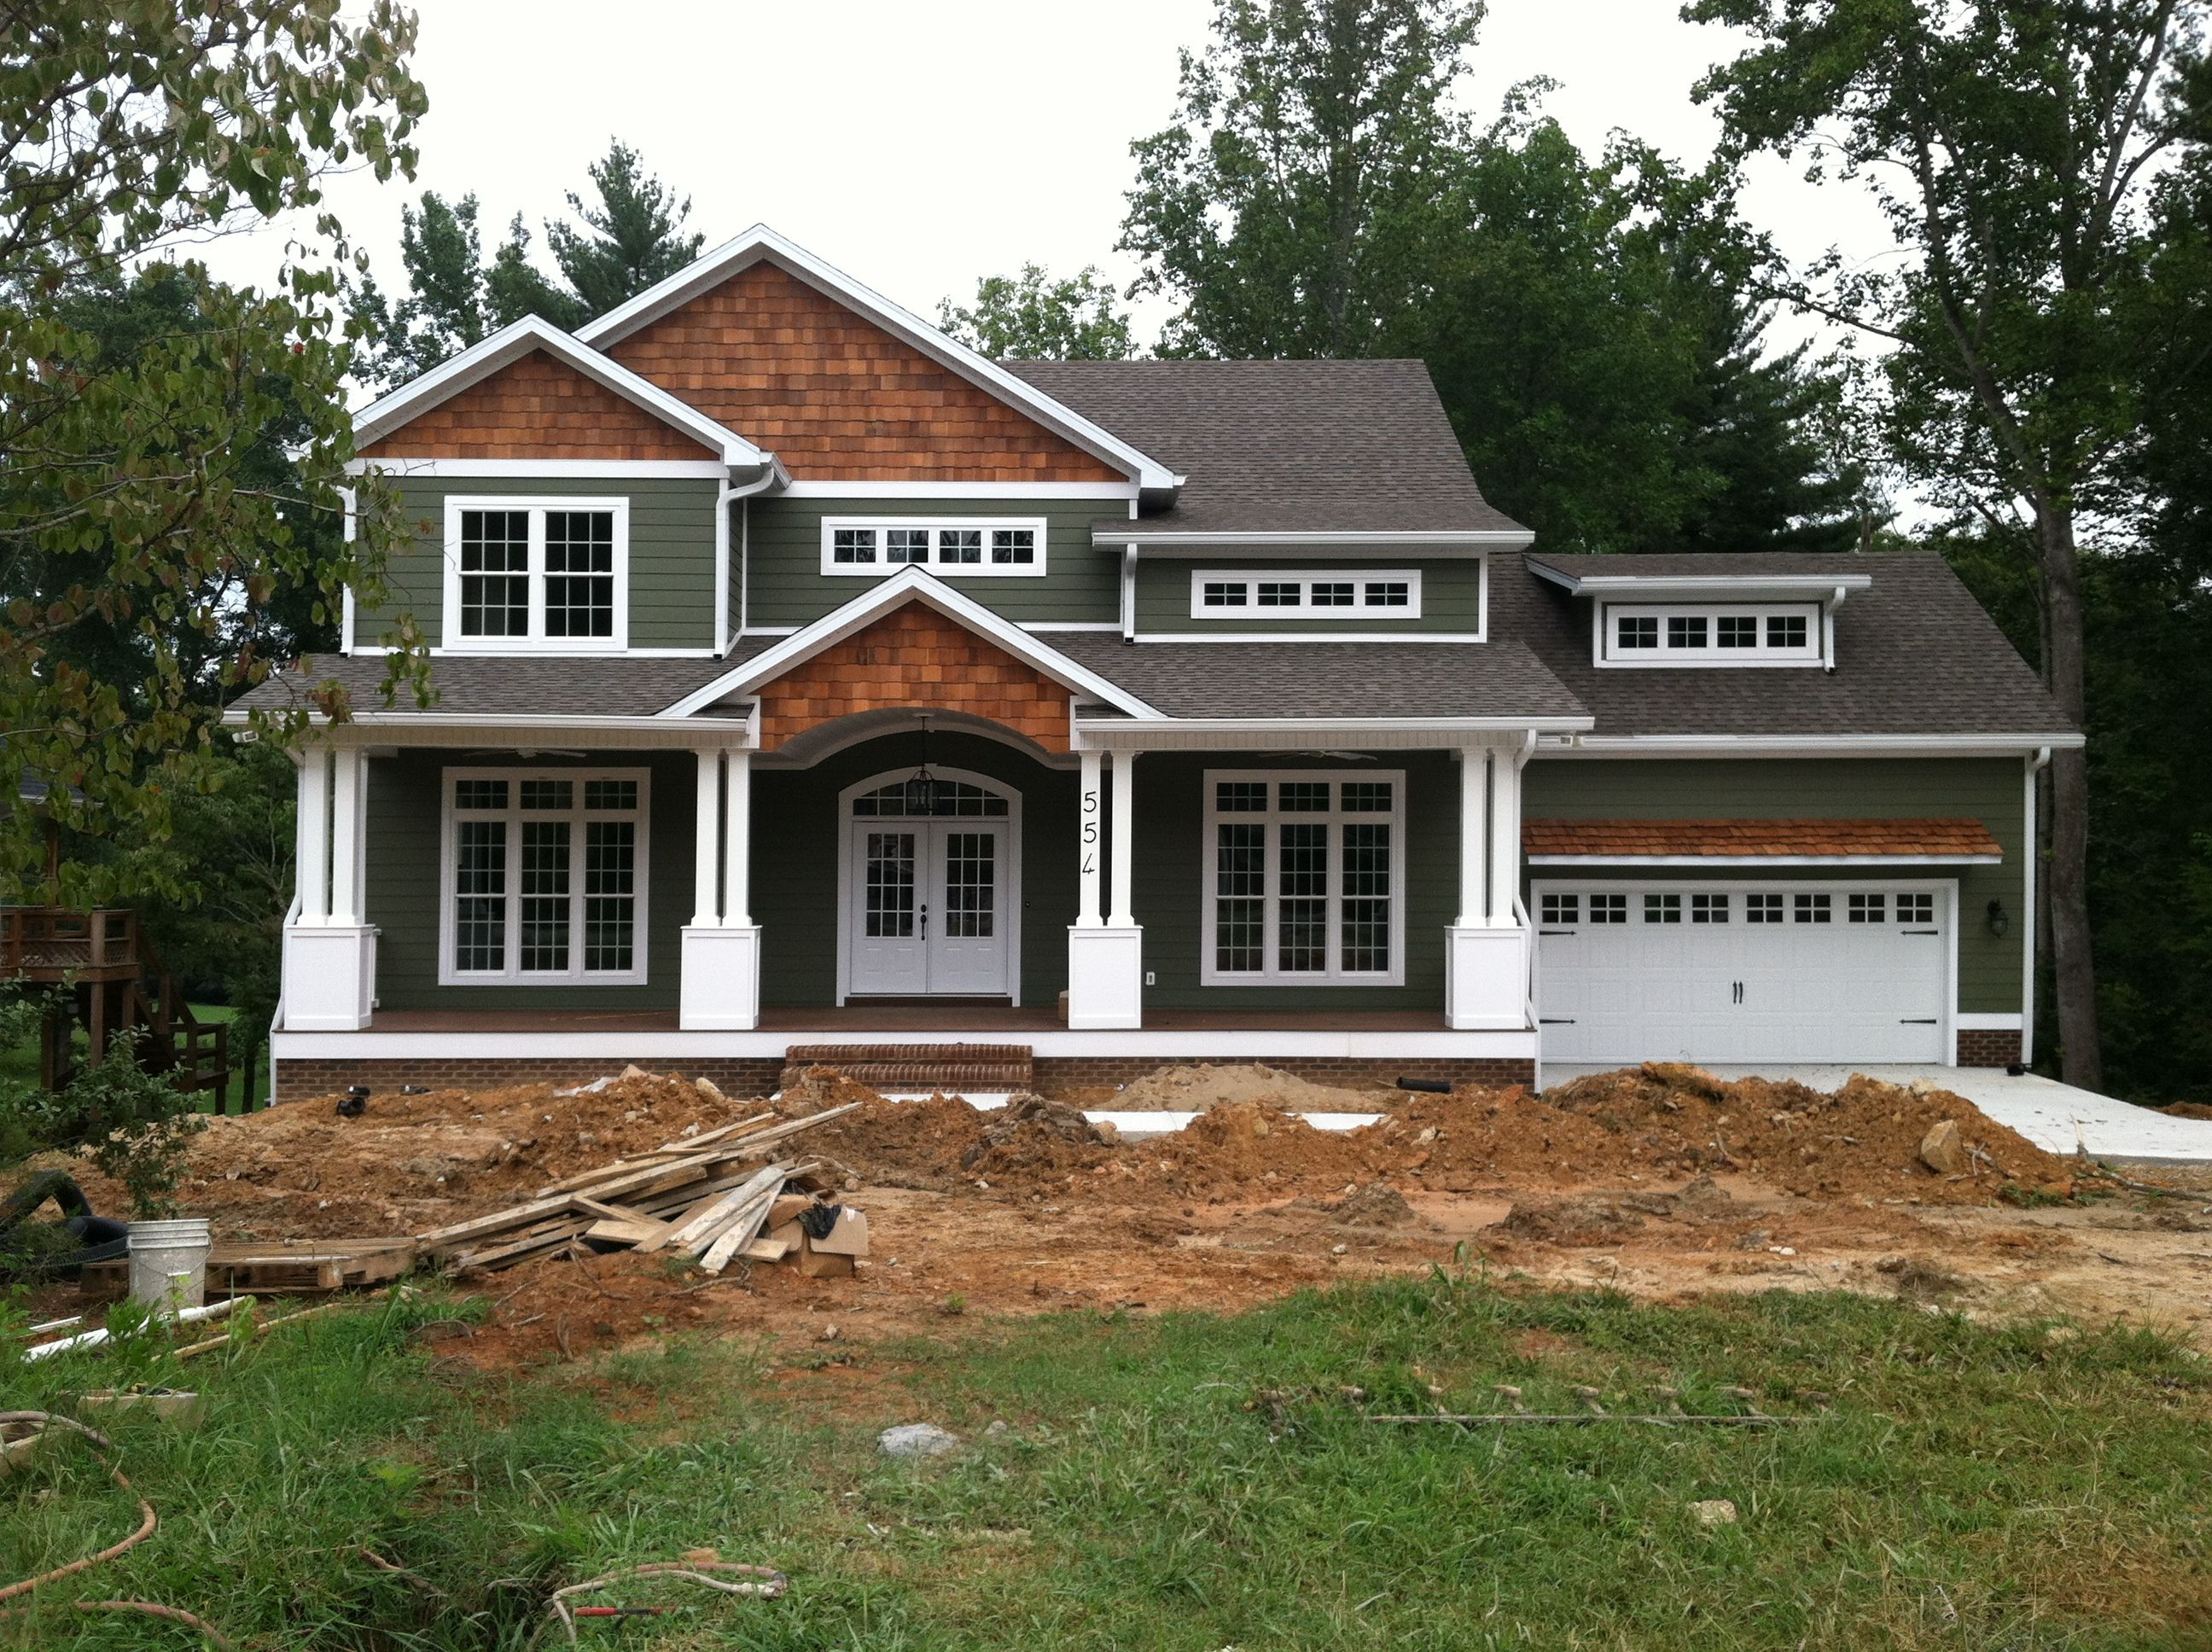 Craftsman Style Home... Turn The Garage To The Side, Change The Color